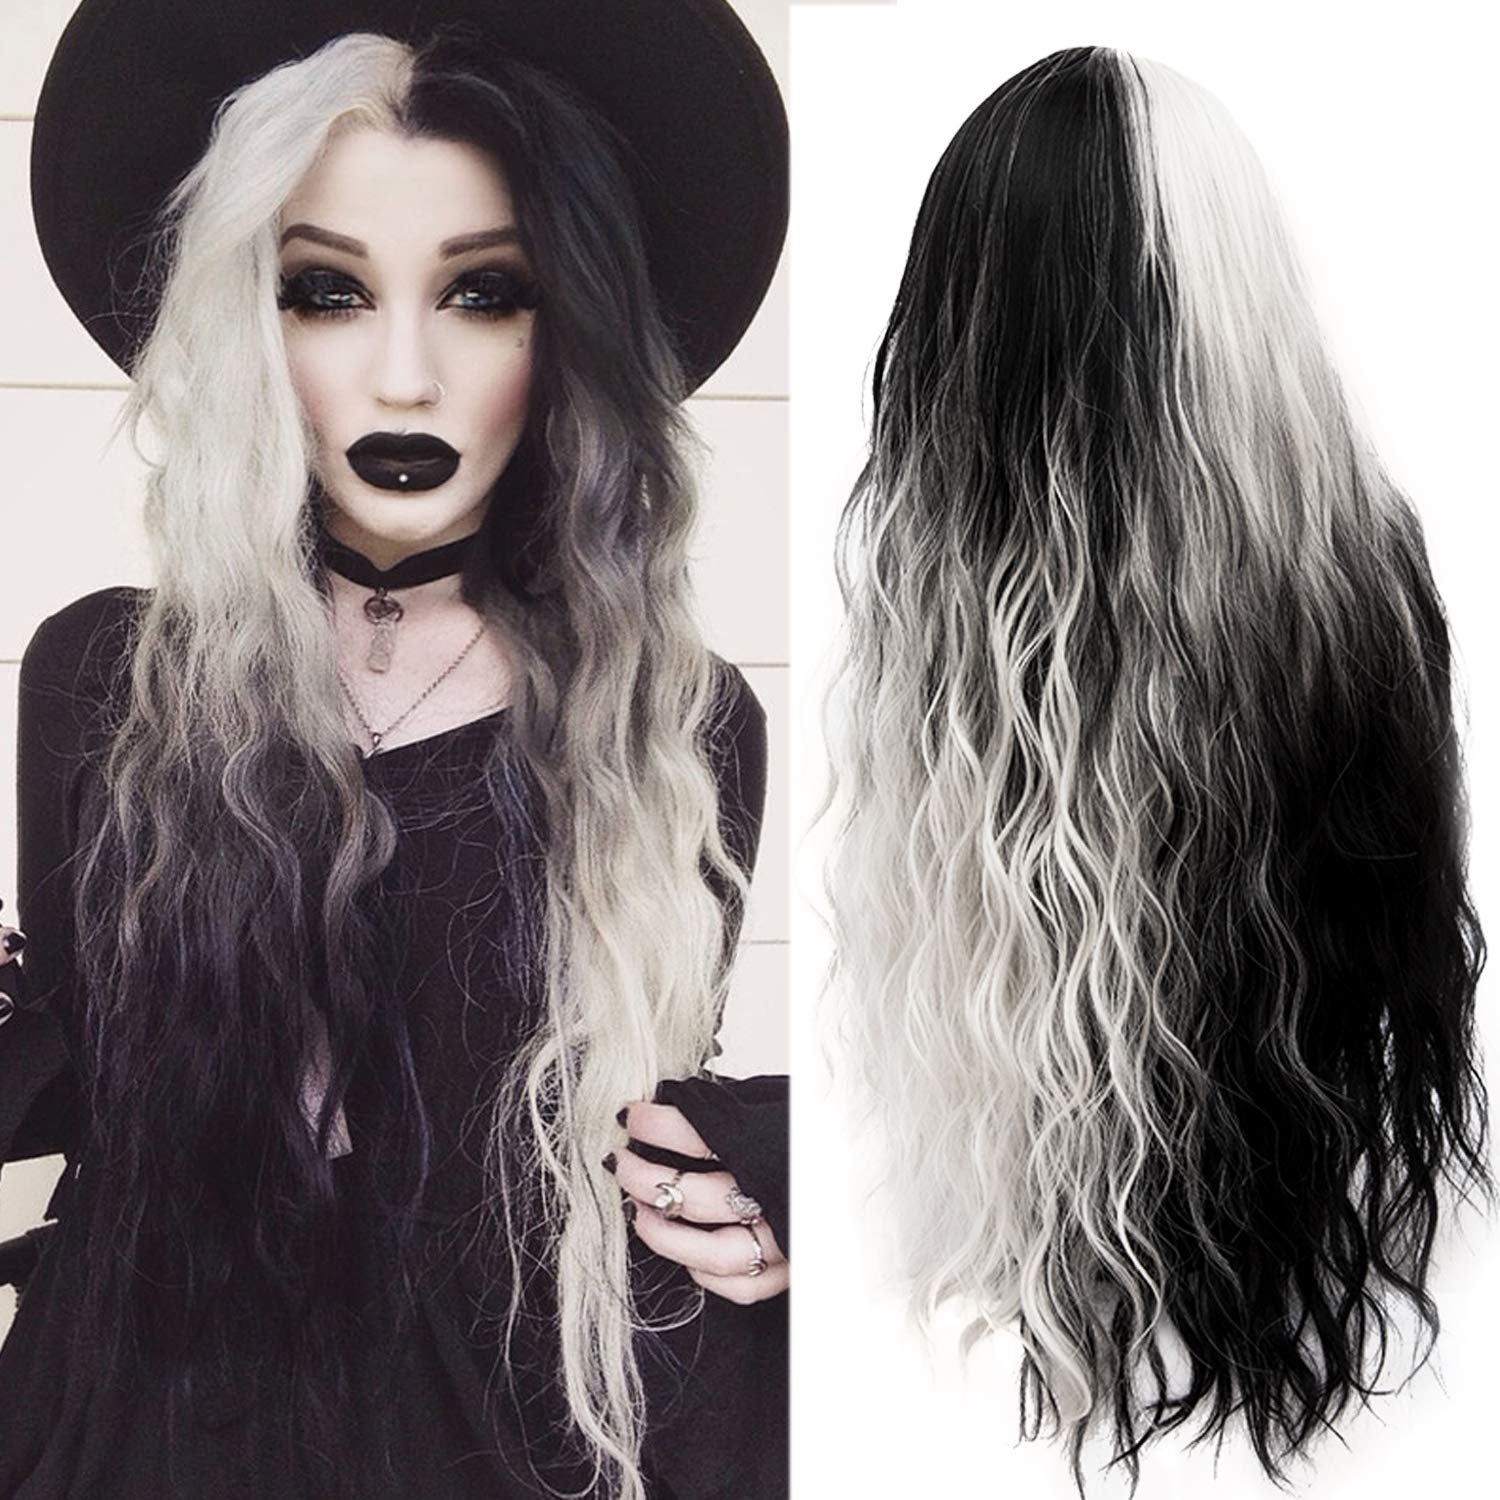 Mildiso Ombre Wig Long Curly Wigs for Women Stylish Party Cosplay Wigs Synthetic Heat Resistant 32'' (Black silver grey) 051 by Mildiso